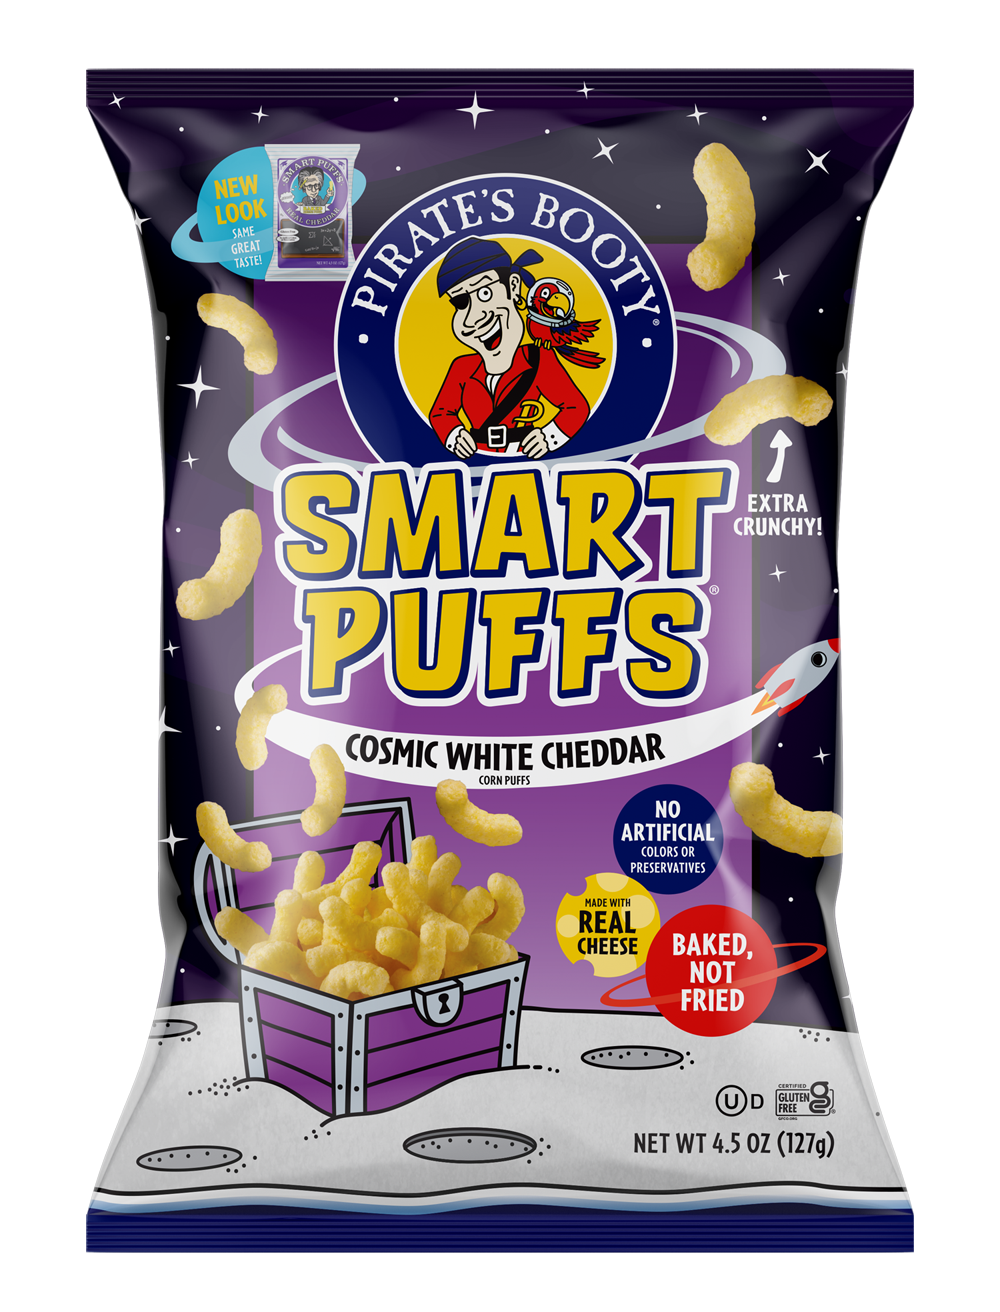 Pirate's Booty Smart Puffs